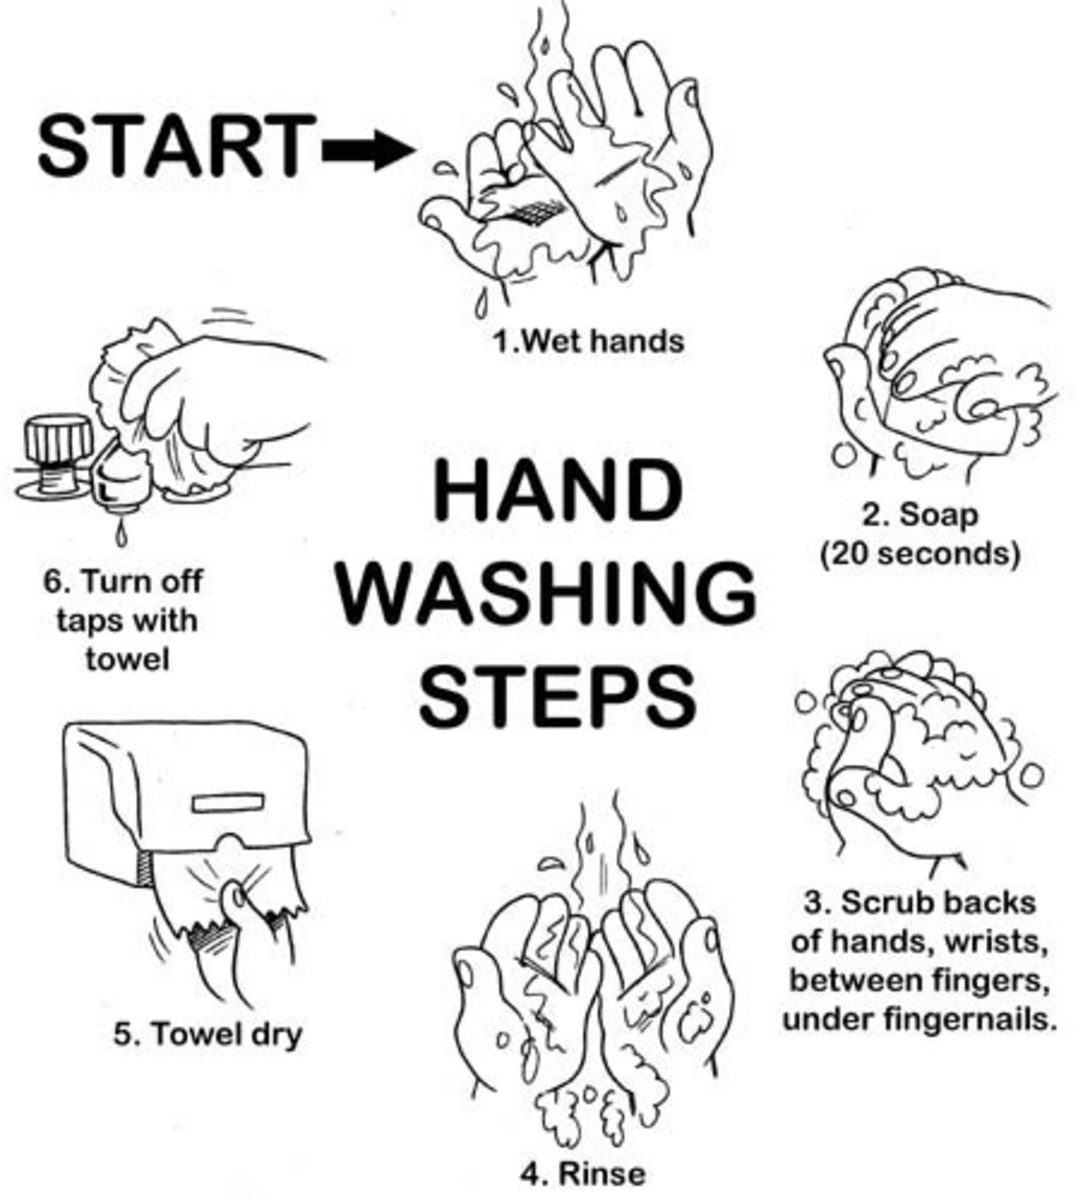 Be Well! Wash Your Hands!